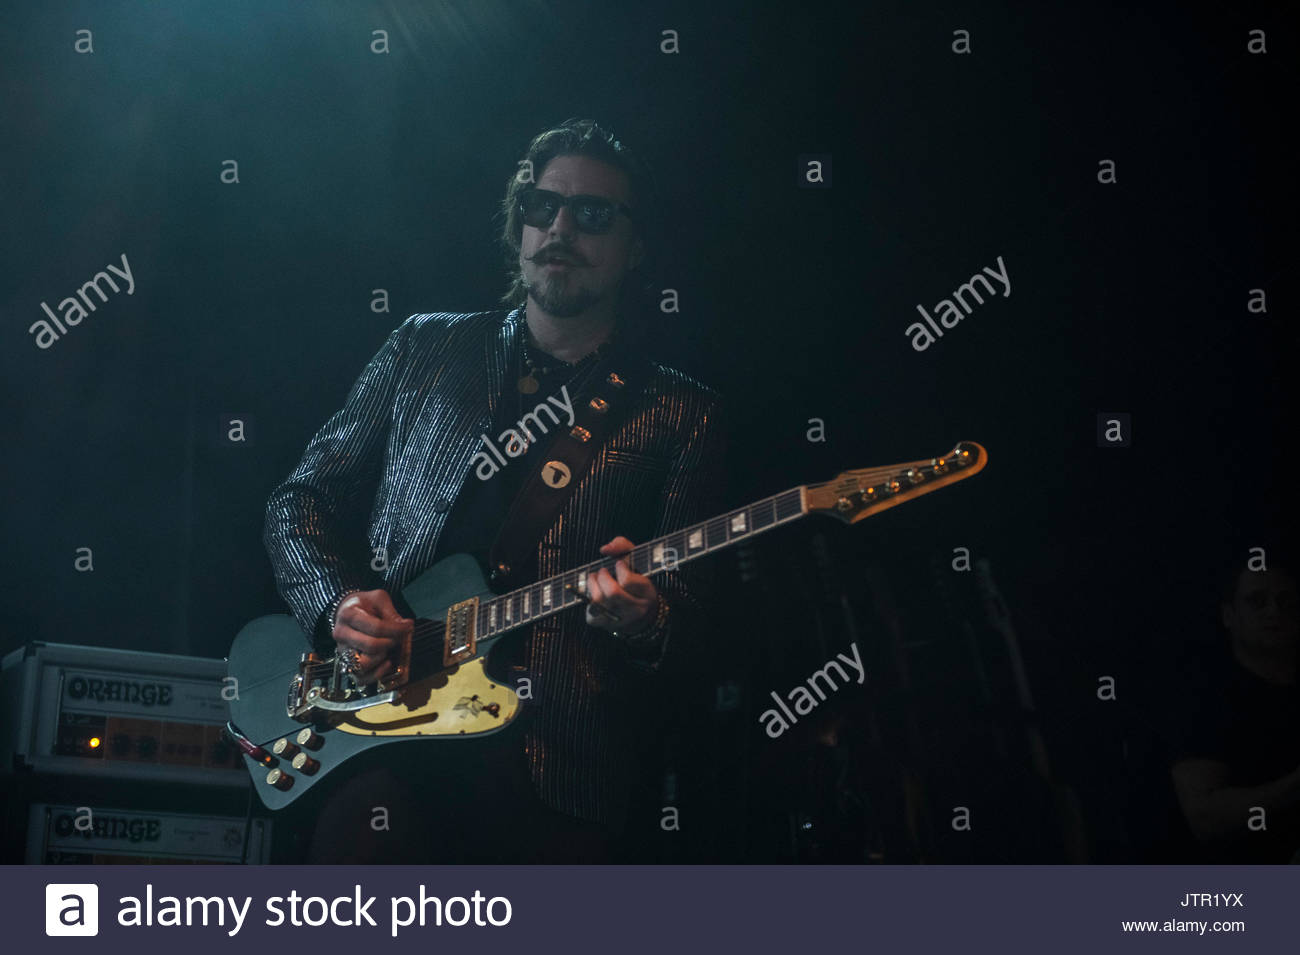 RIVAL SONS LIVE ON STAGE IN MILAN ON FEBRUARY 14, 2017 - Stock Image